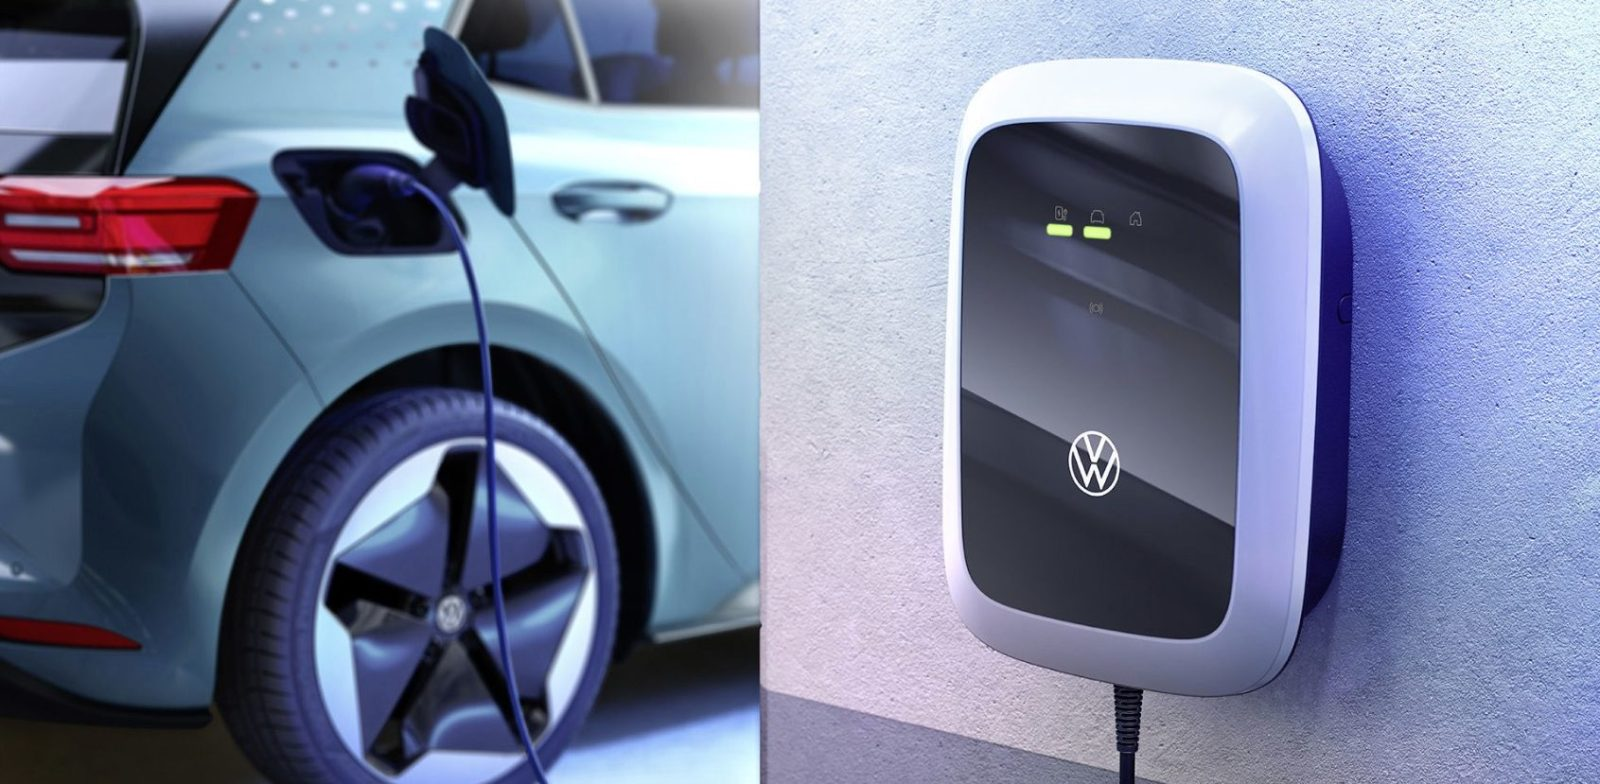 VW unveils new home ID Charger station ahead of ID 3 release